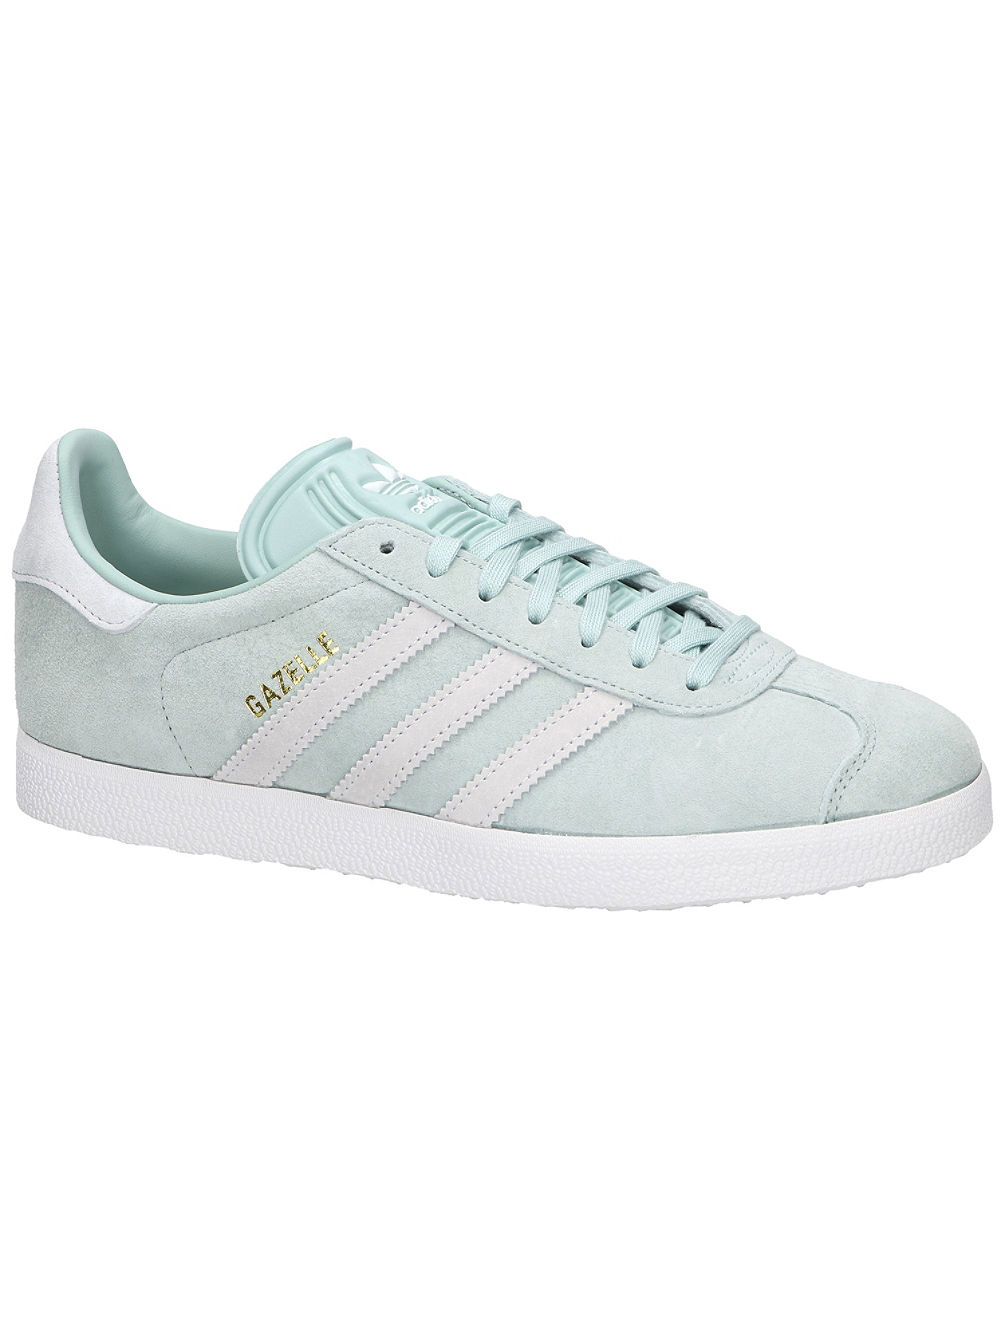 afe7e42402a Buy adidas Originals Gazelle Sneakers Women online at blue-tomato.com